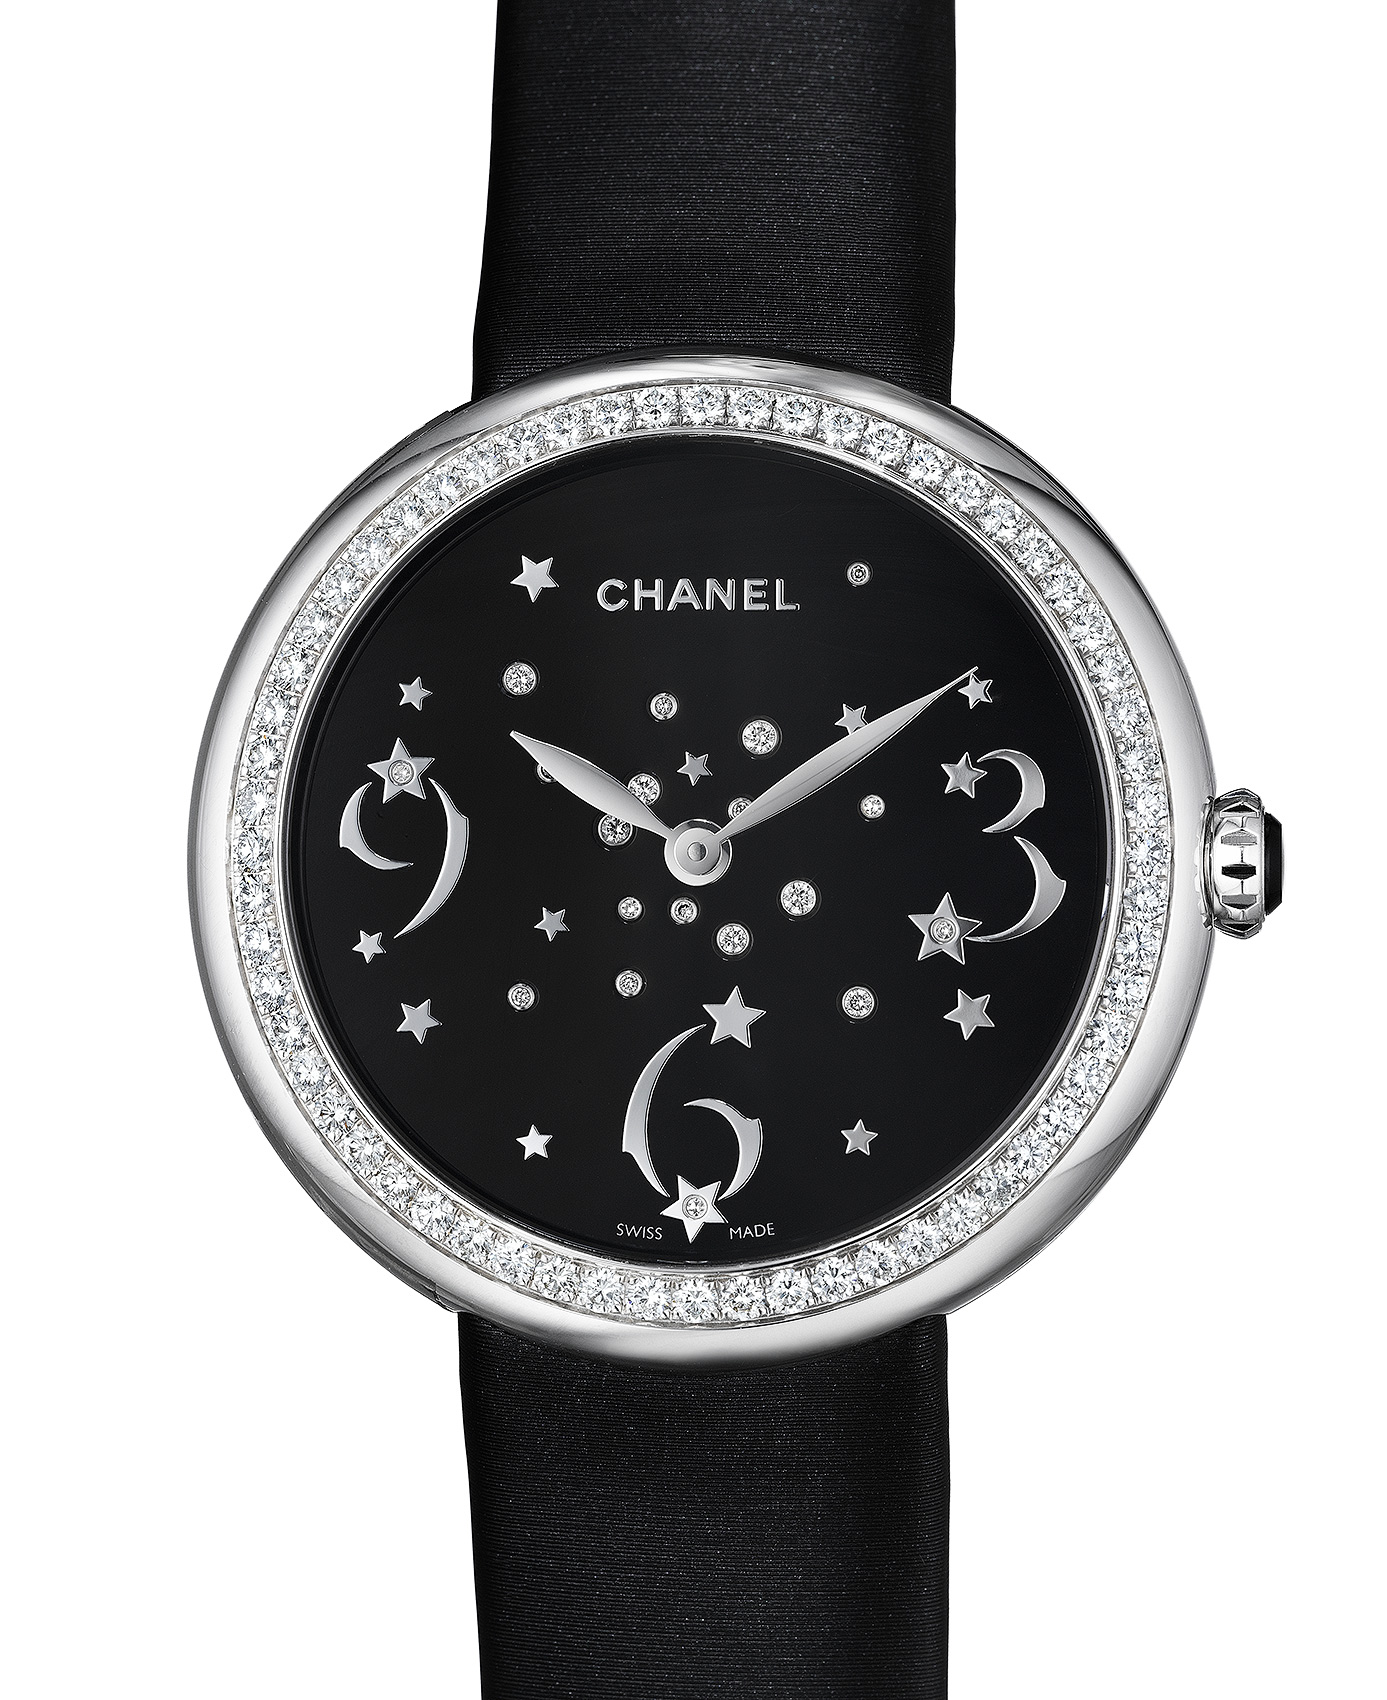 Chanel-Watch-Face